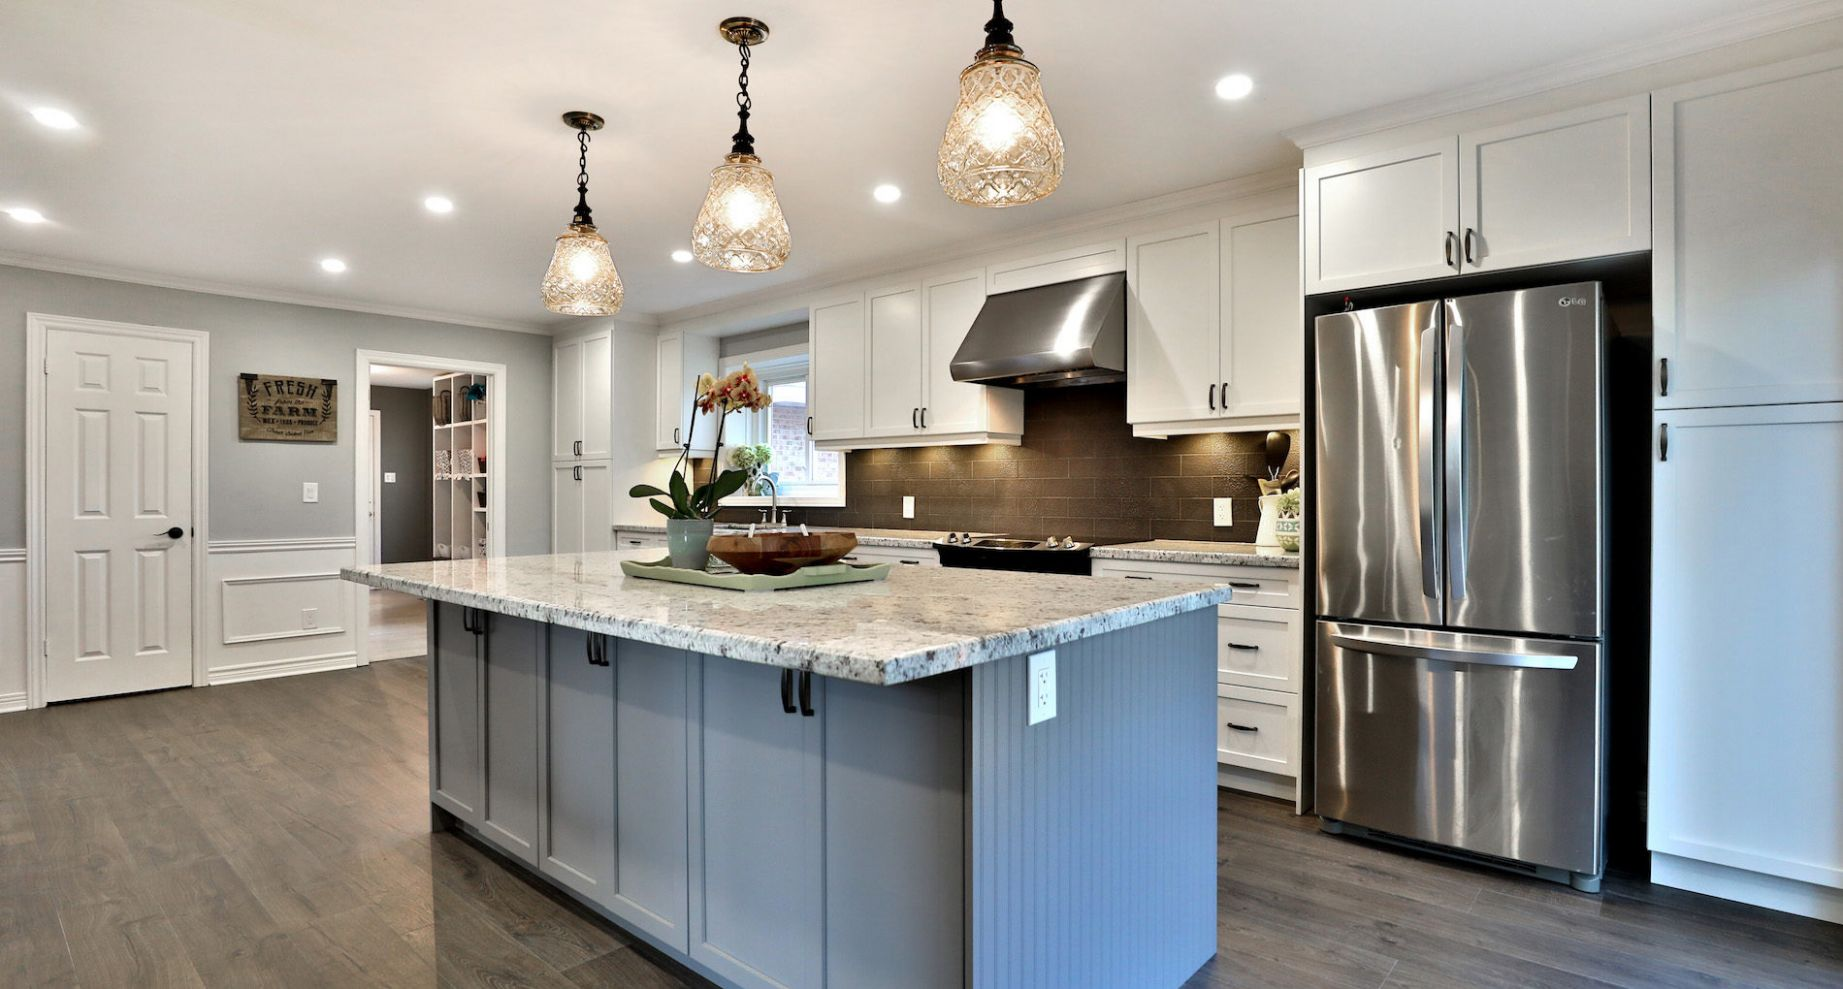 Kitchen Renovations & Design in South Etobicoke | Alair Homes ..